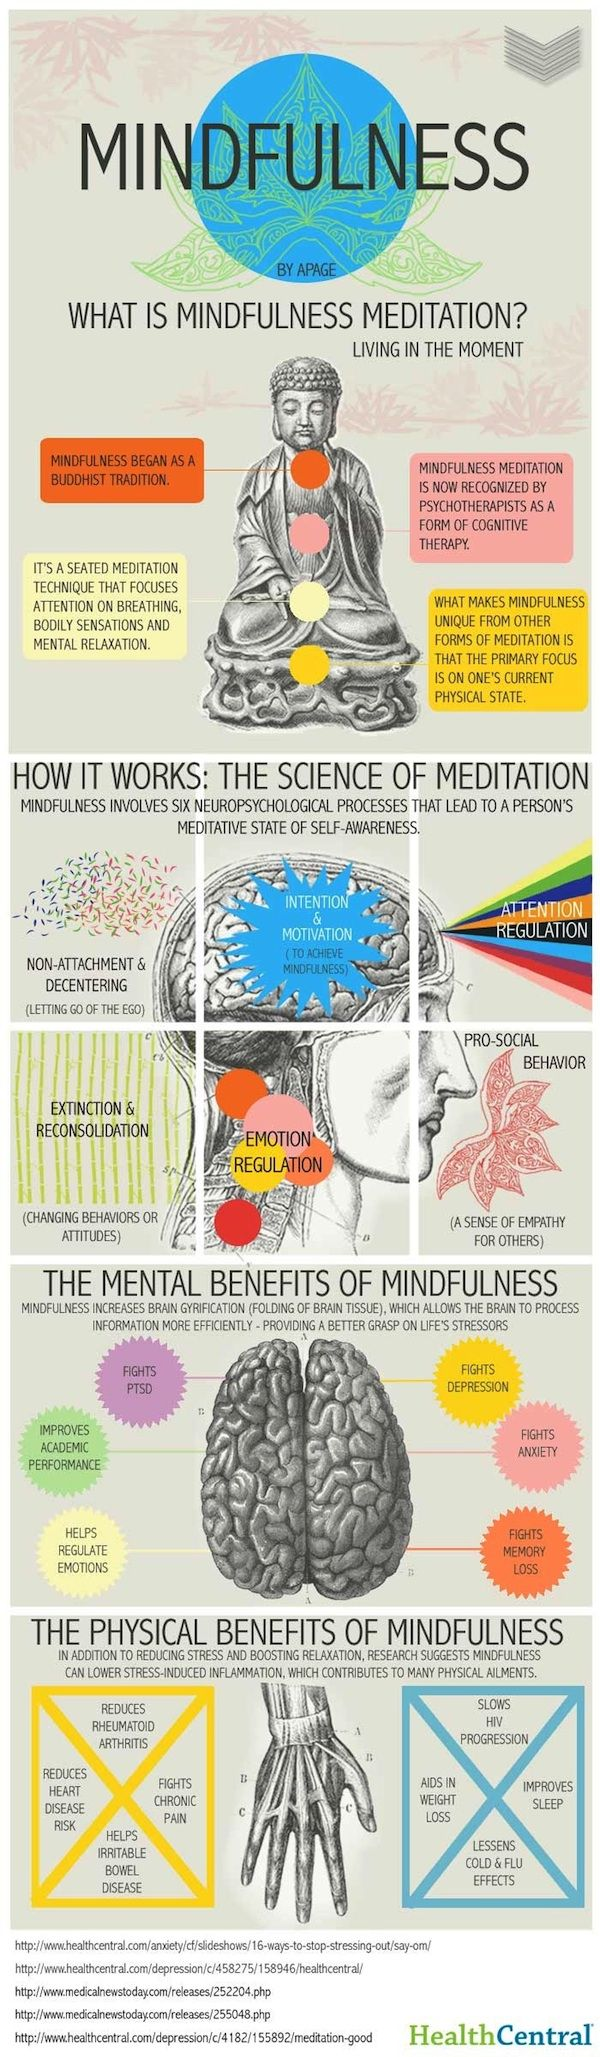 Mindfulness: Buzzword of the Year Or Something More?